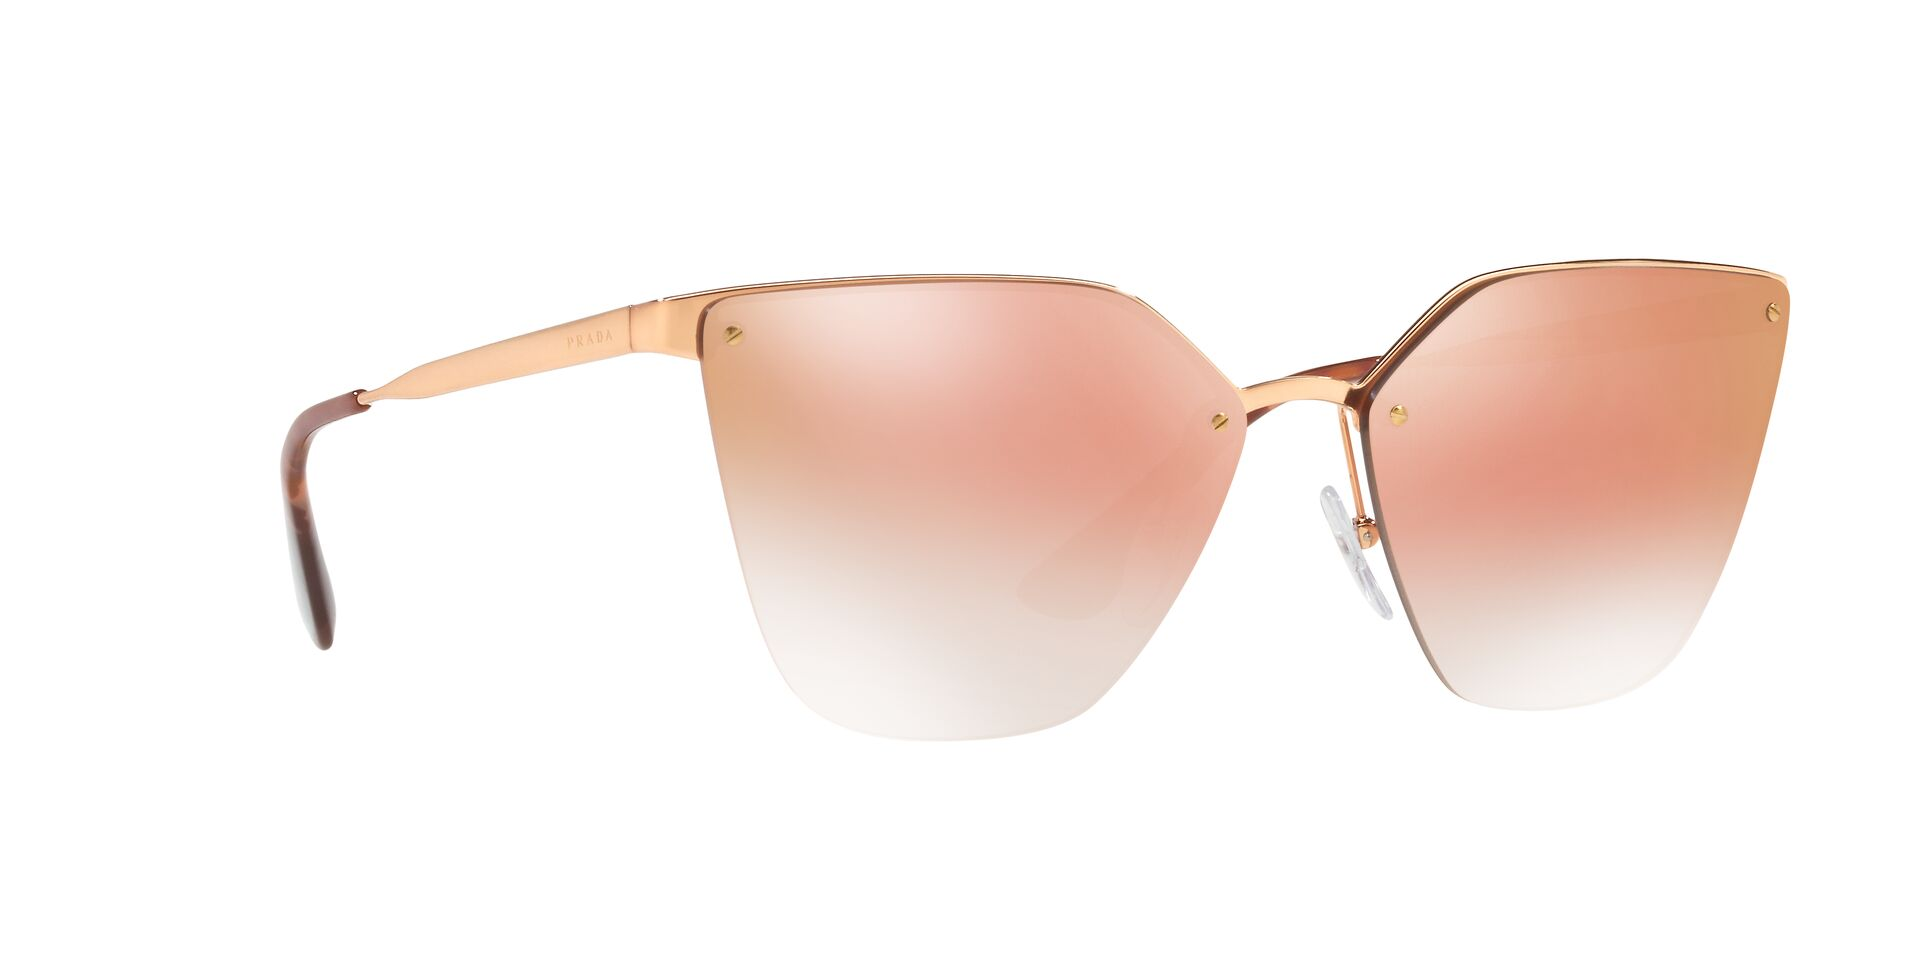 Prada - PR68TSS Bronze/Pink Mirror Rectangular Women Sunglasses - 63mm-Sunglasses-Designer Eyes